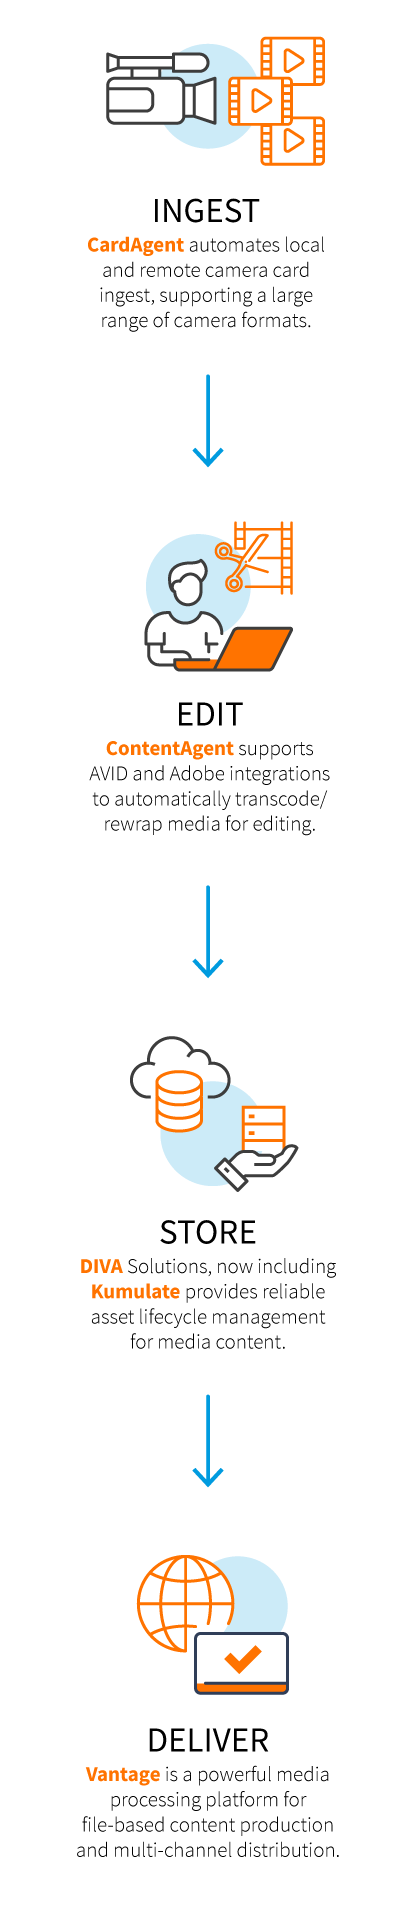 ContentAgent automates ingest and delivery processes in a seamless ...